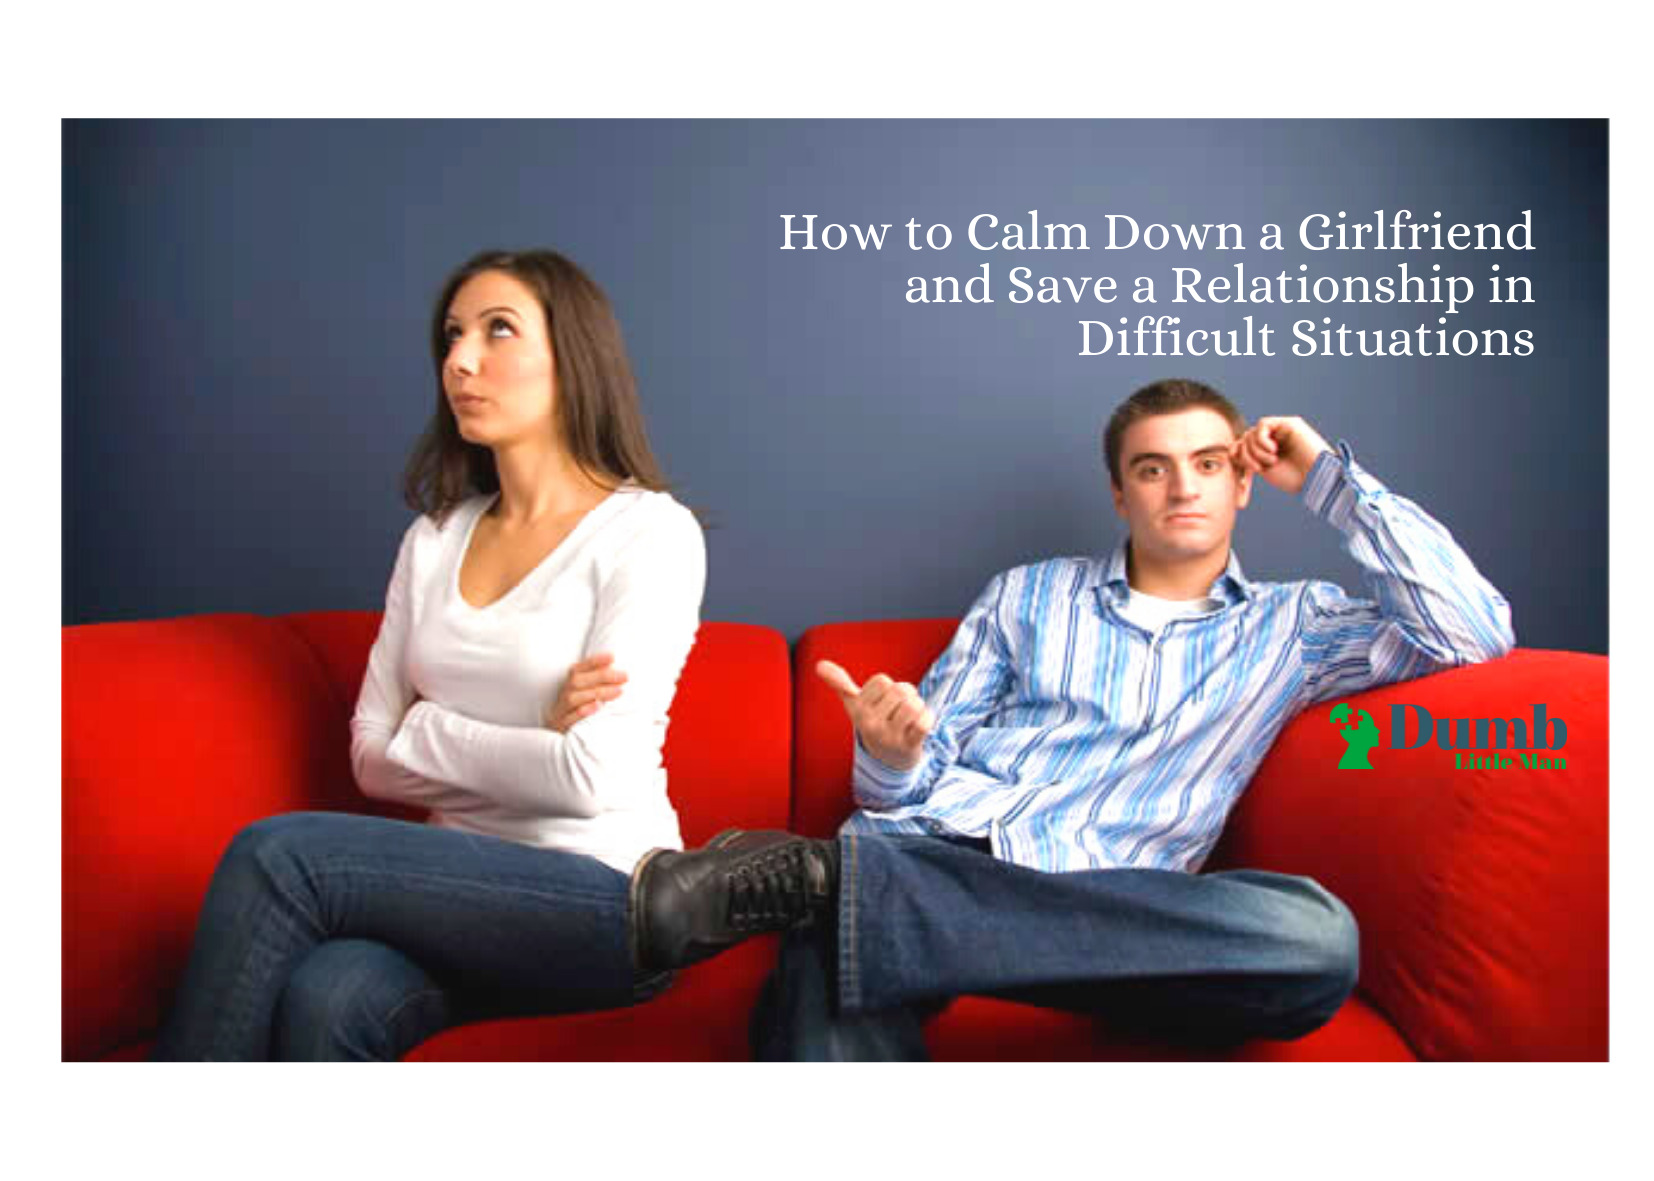 how-to-calm-down-a-girlfriend-and-save-a-relationship-in-difficult-situations